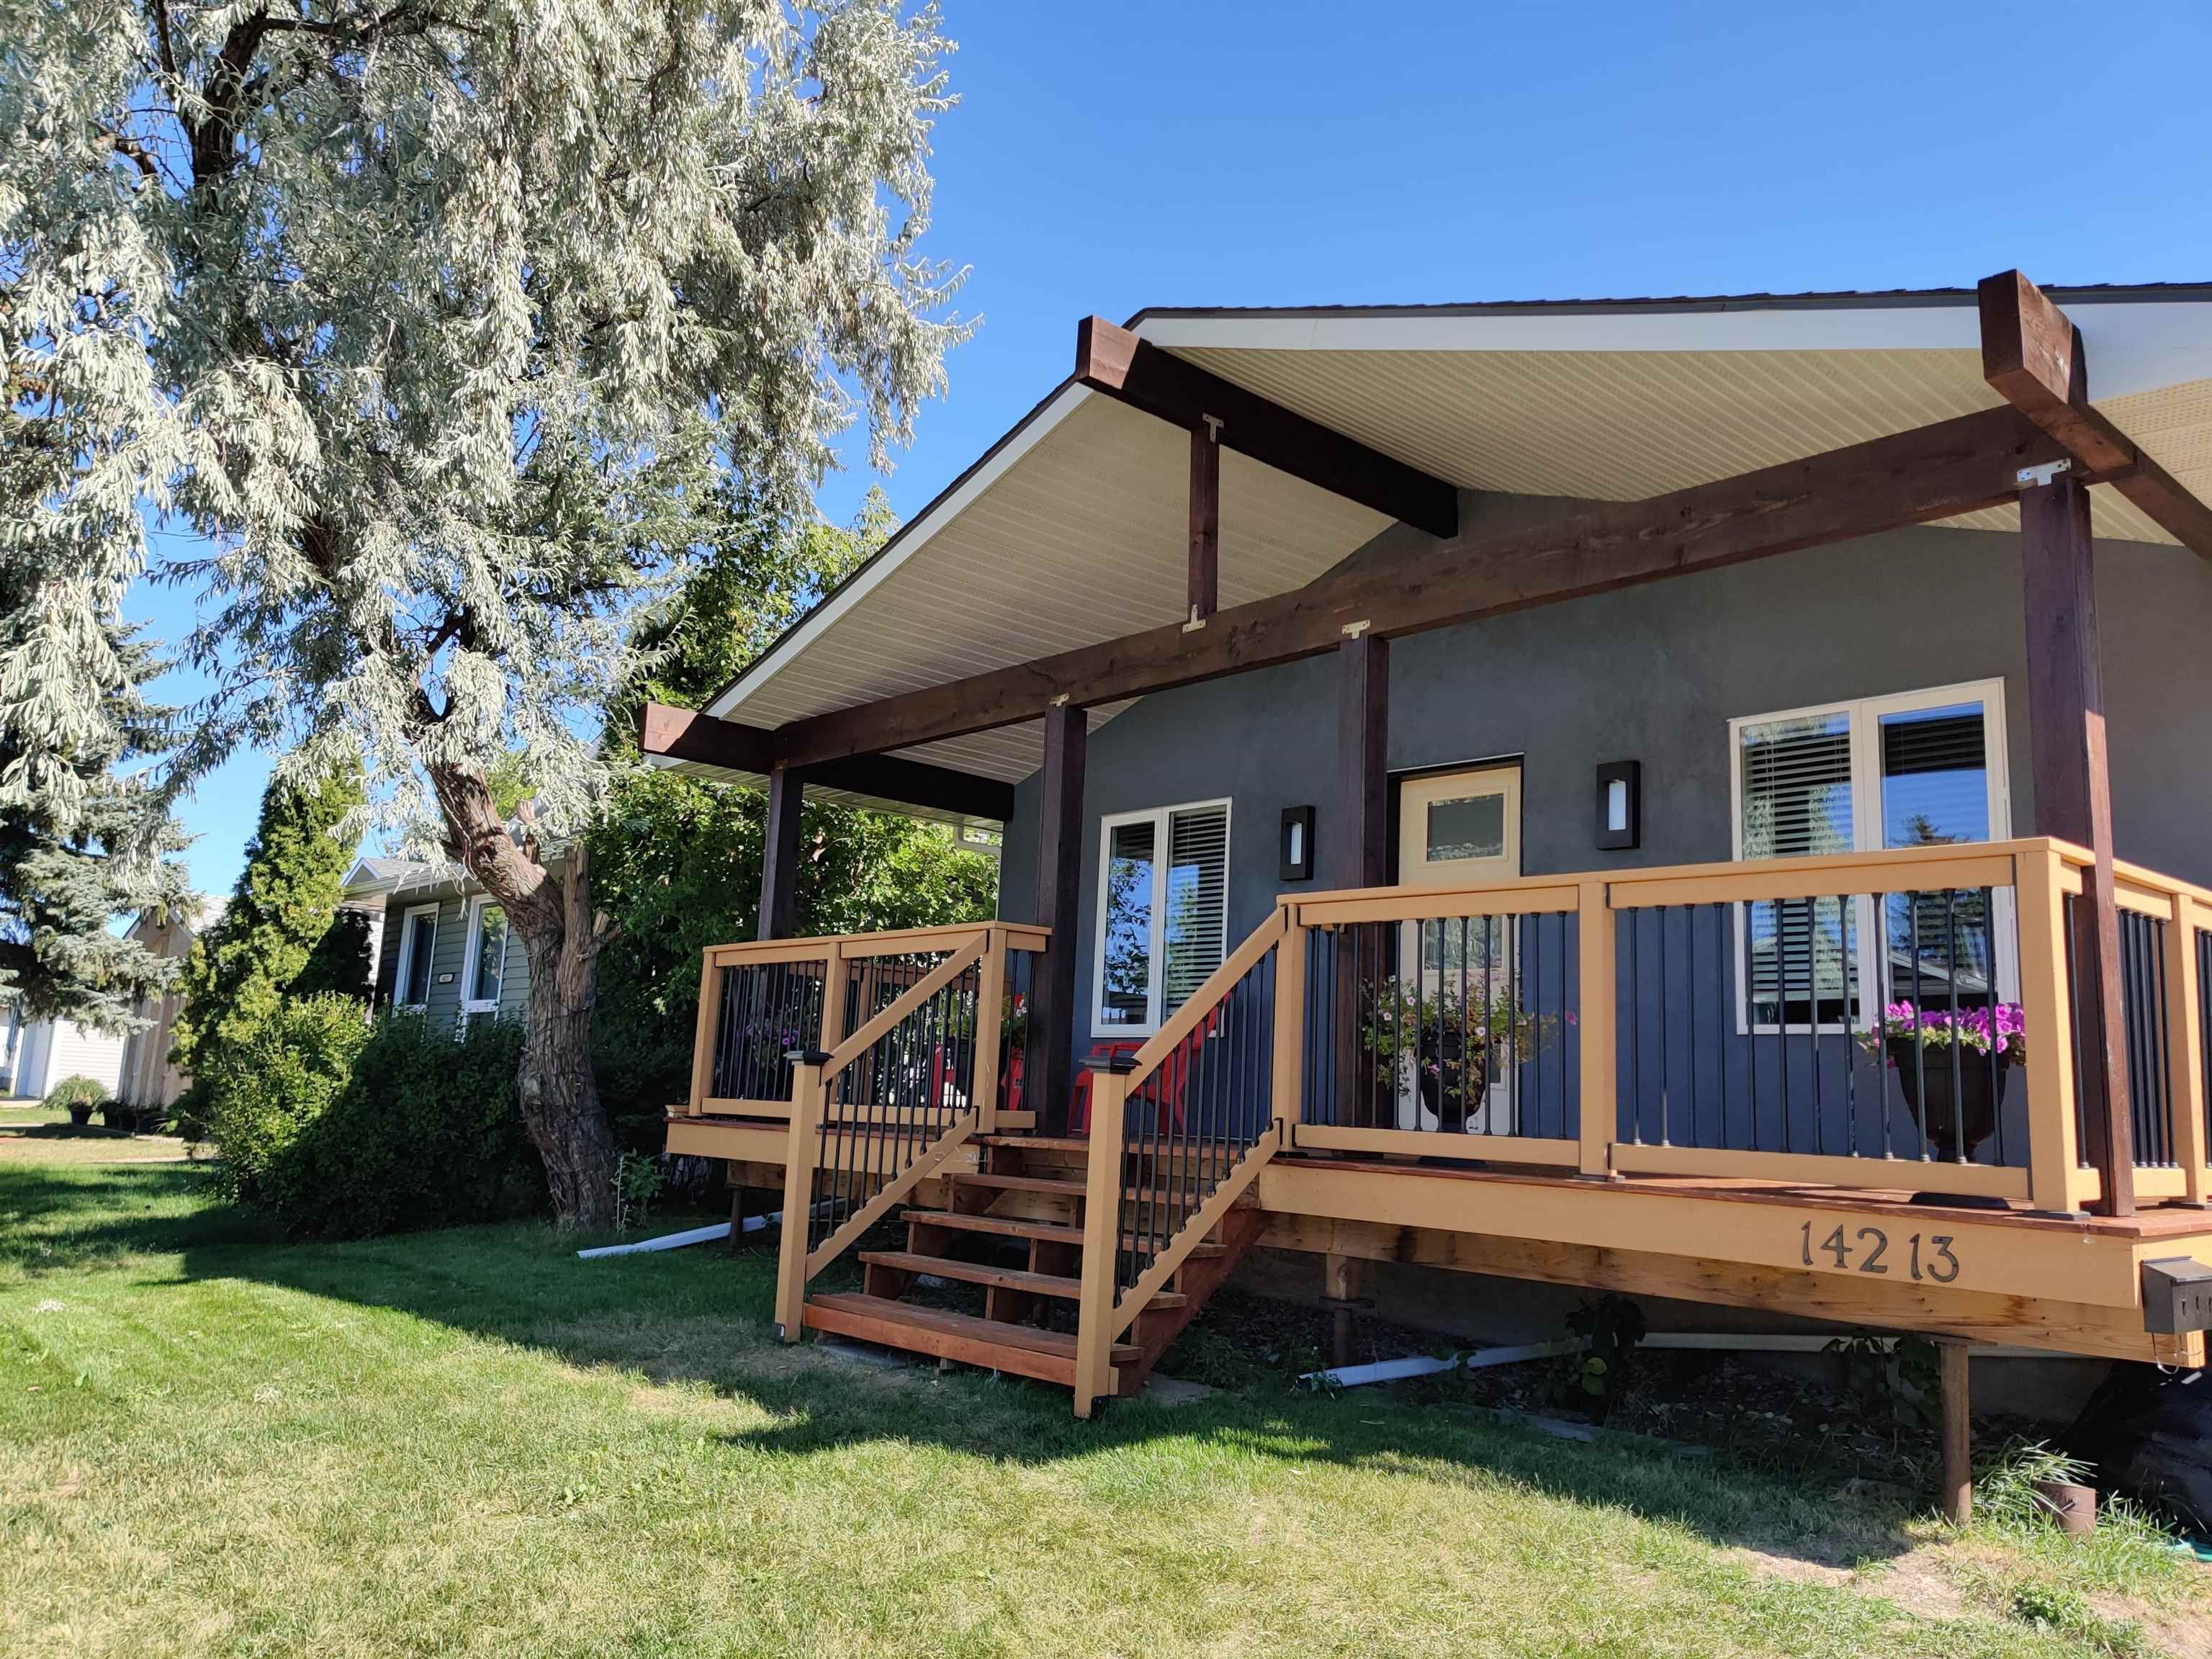 Main Photo: 14213 24A Street in Edmonton: Zone 35 House for sale : MLS®# E4262019